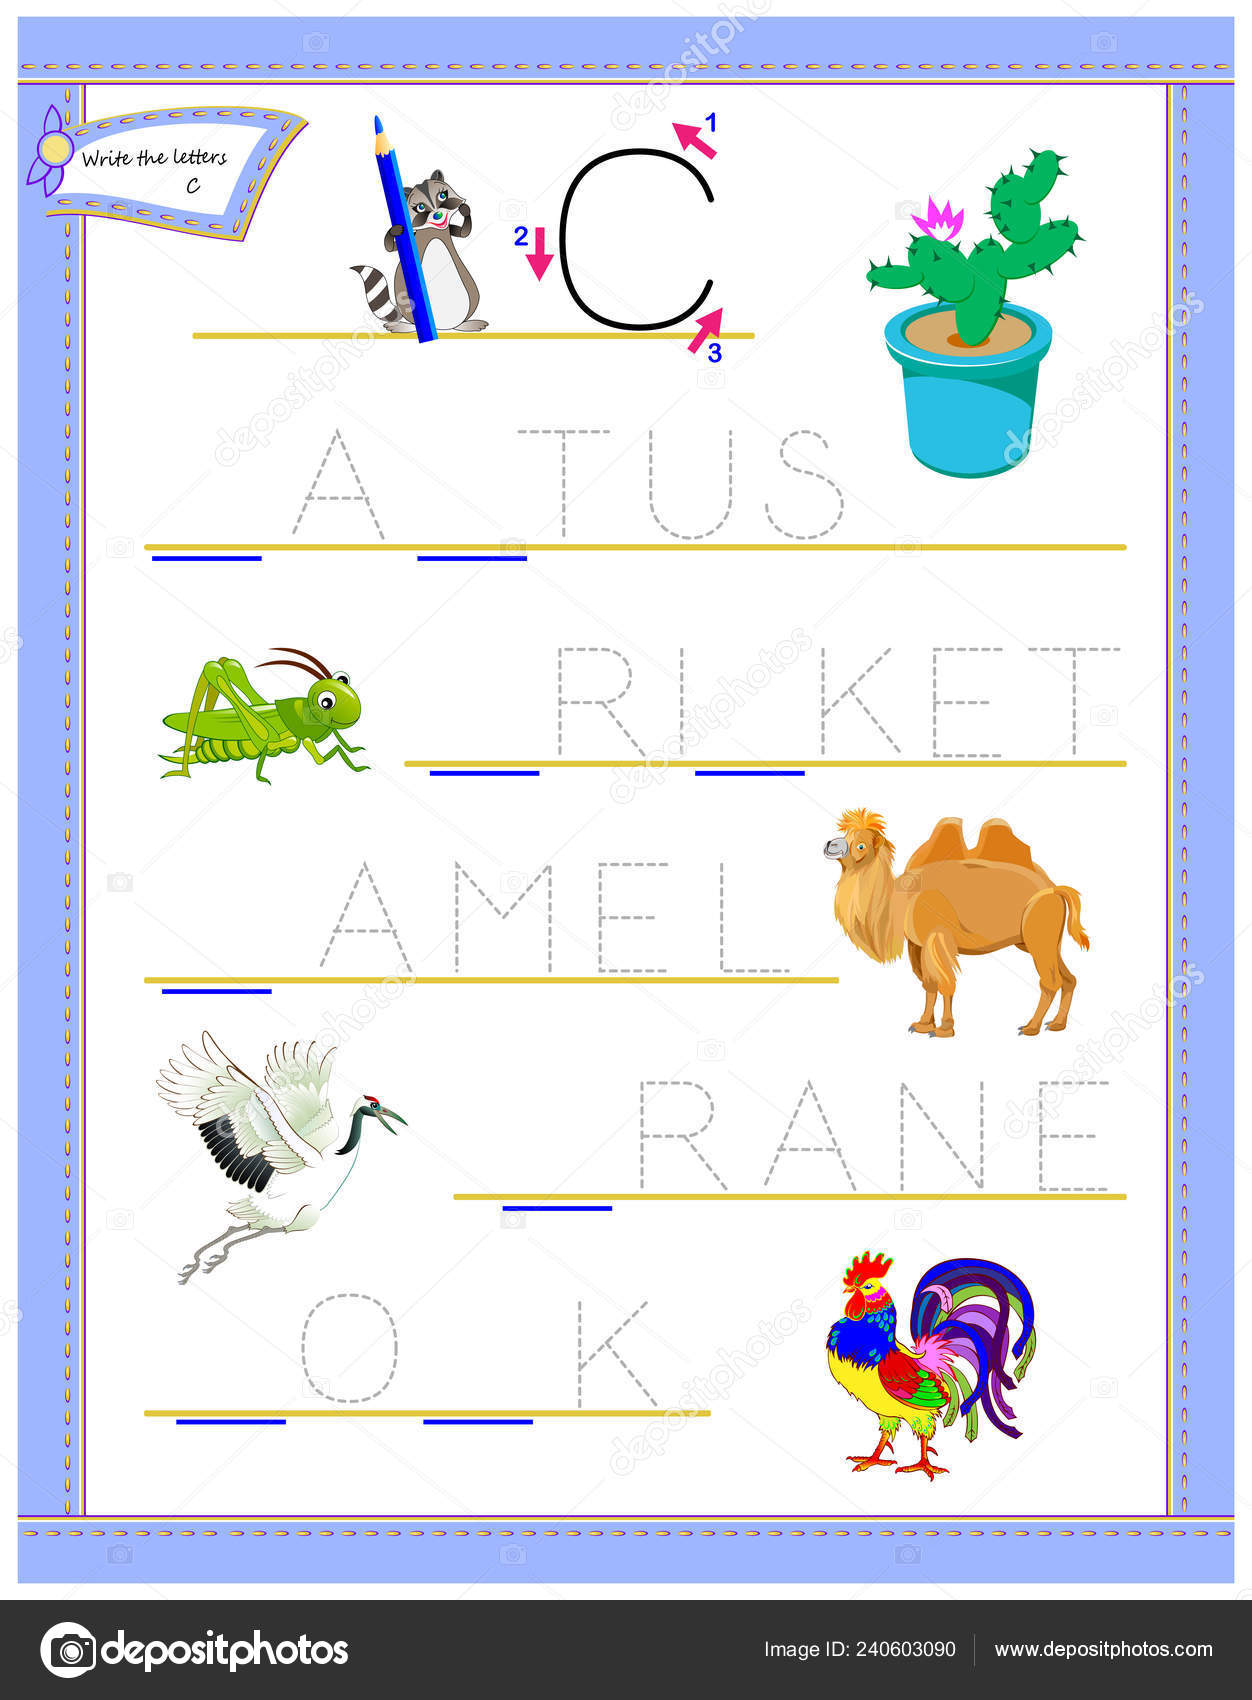 Worksheet For Kids English Alphabets